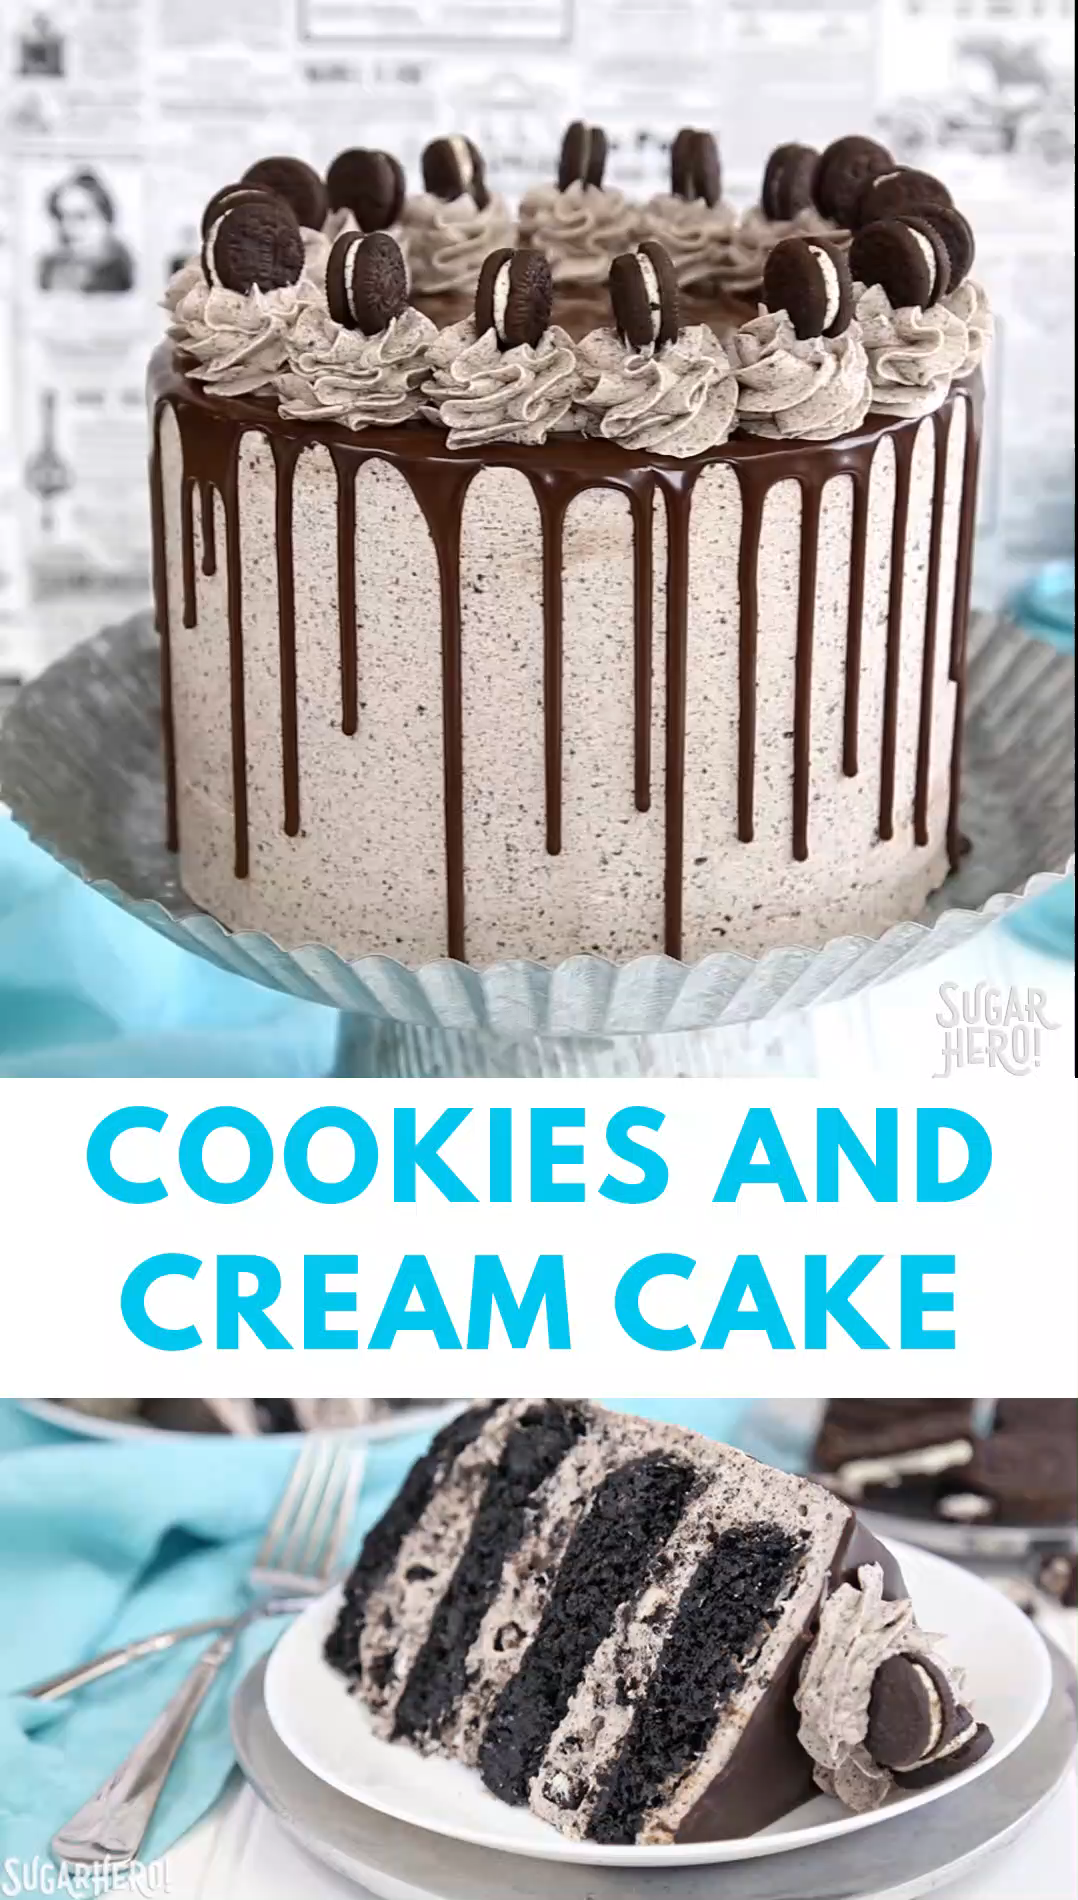 Cookies and Cream Cake Video